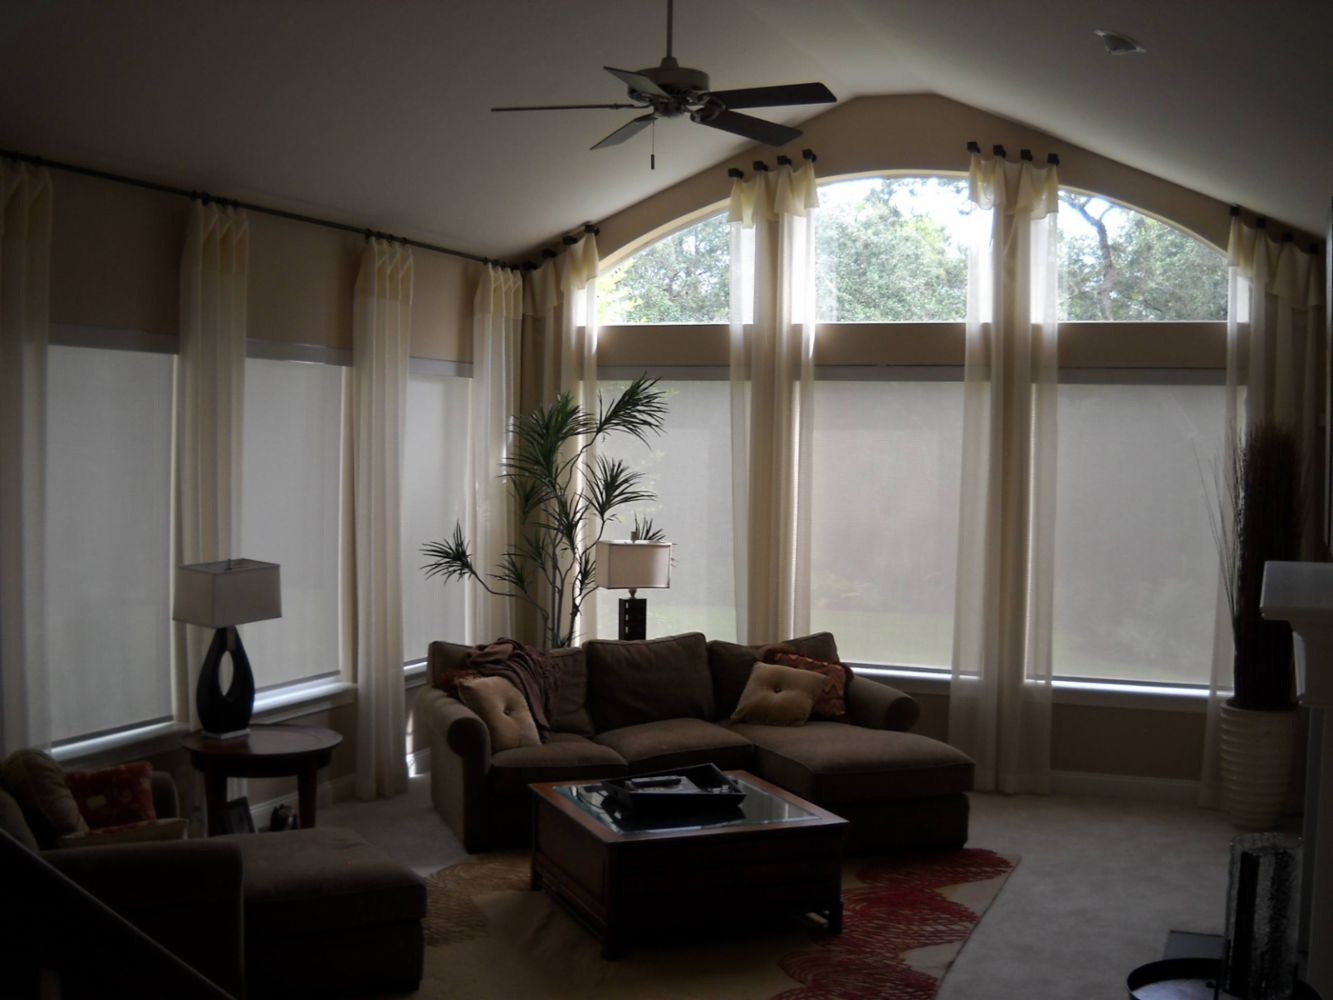 painting contractors jacksonville fl in jacksonville fl a new